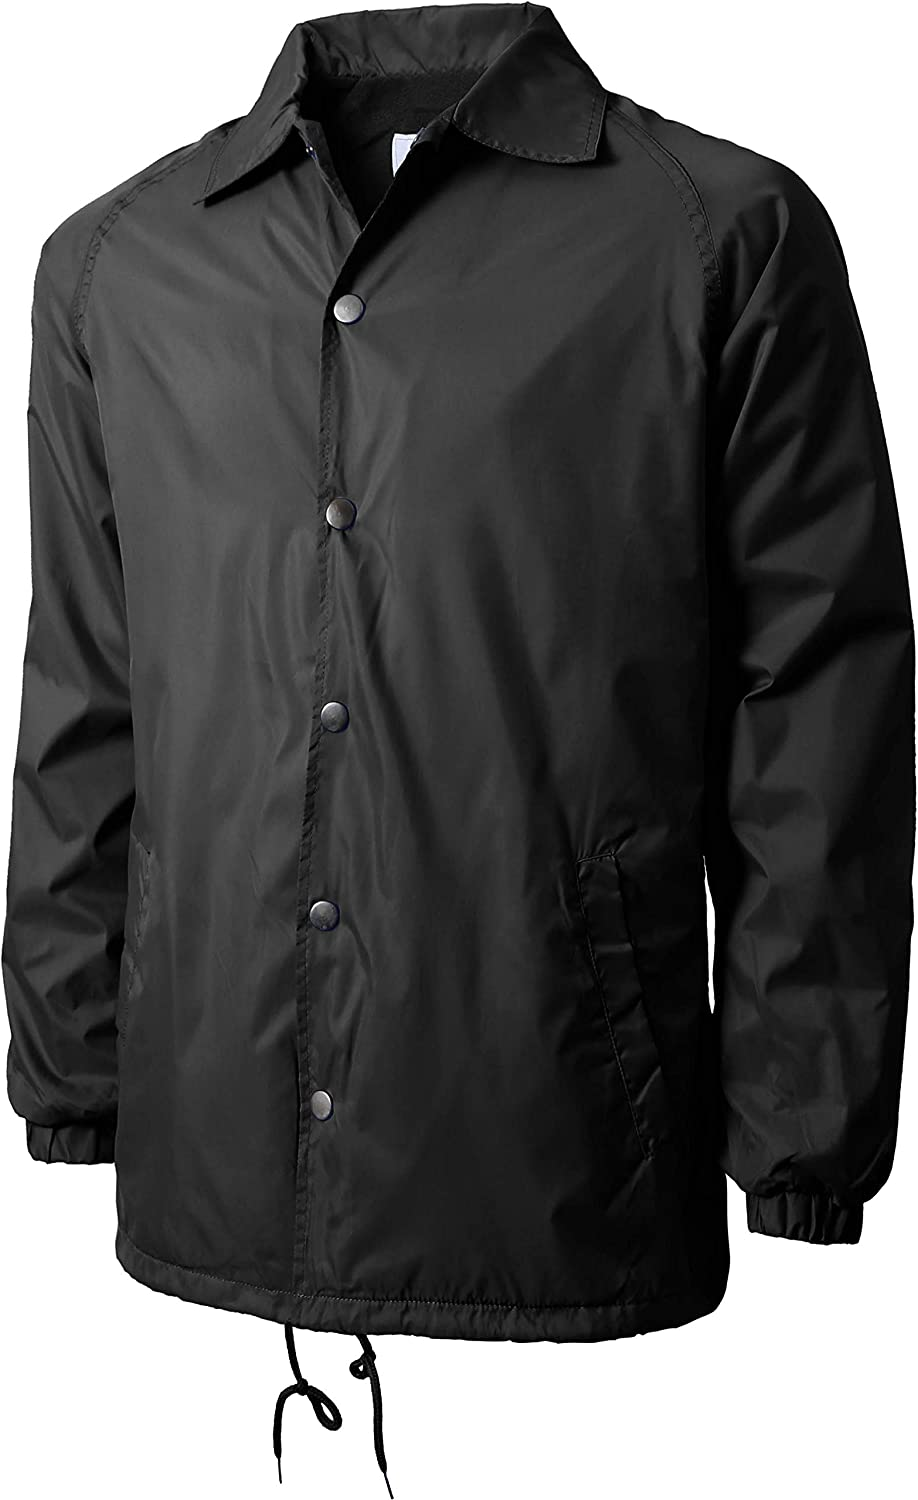 2021 model Hat and Beyond Inventory cleanup selling sale Mens Coaches Waterproof Jackets Windbreake Active